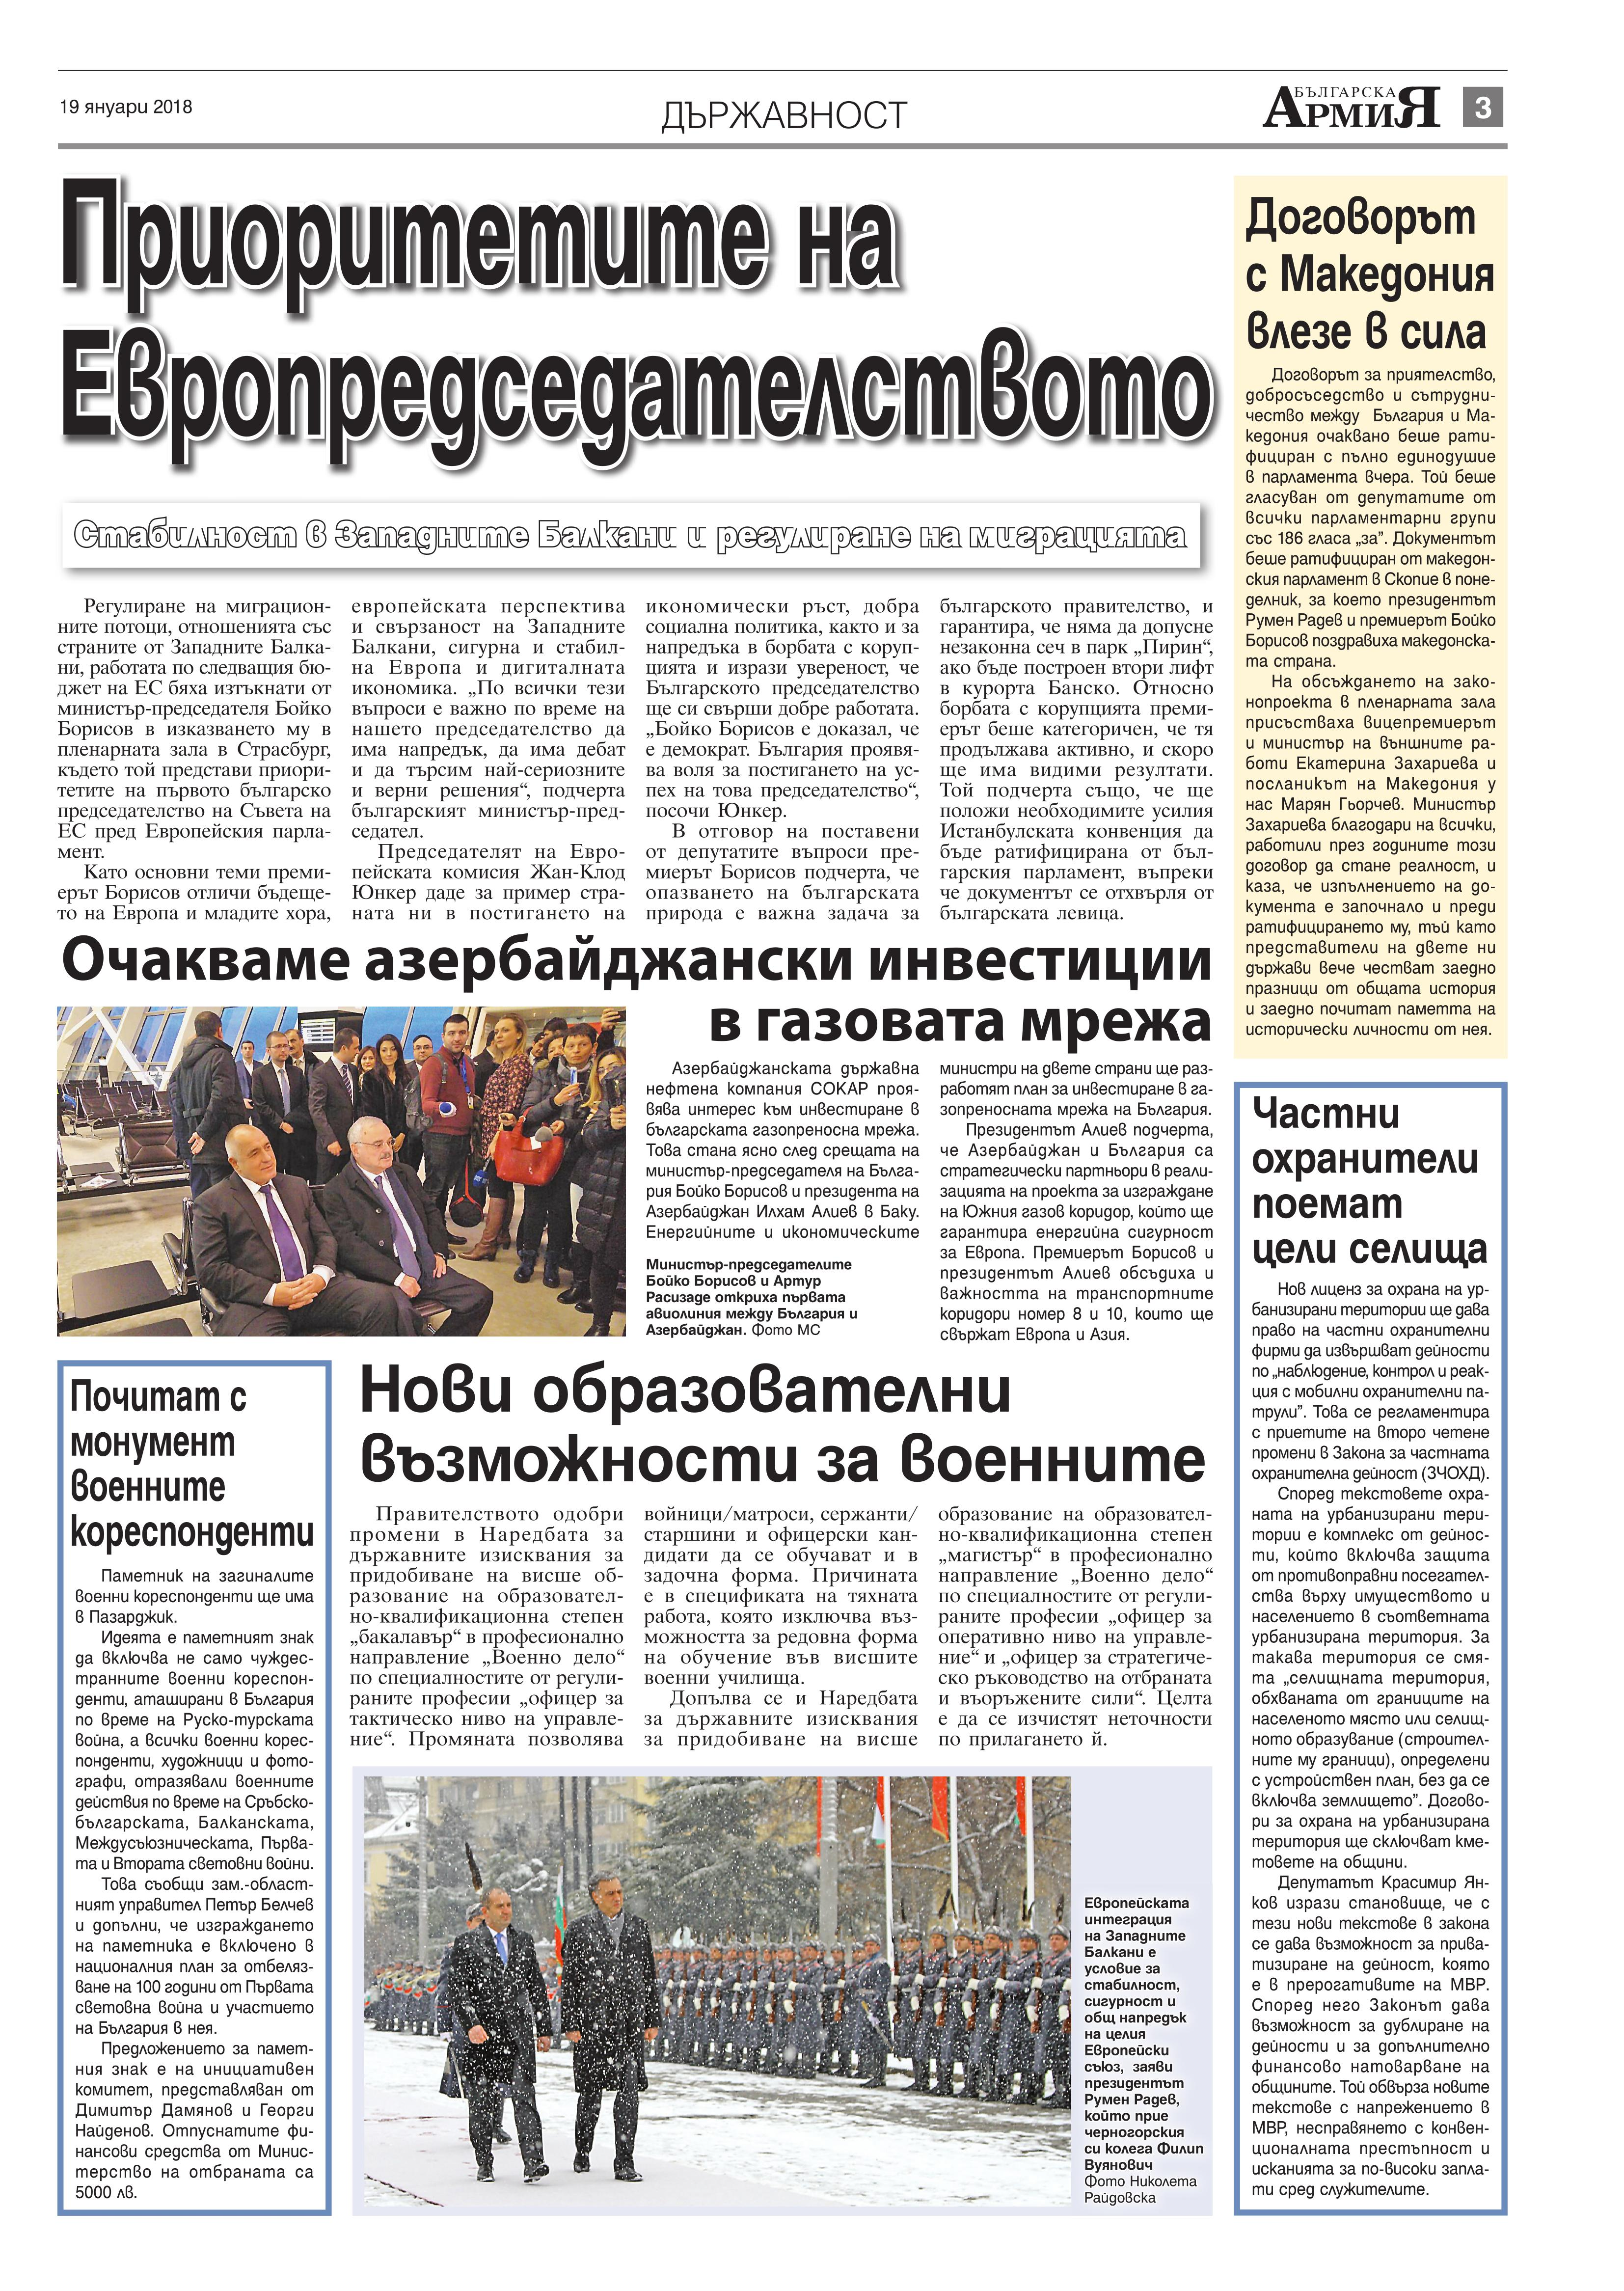 http://armymedia.bg/wp-content/uploads/2015/06/03.page1_-35.jpg